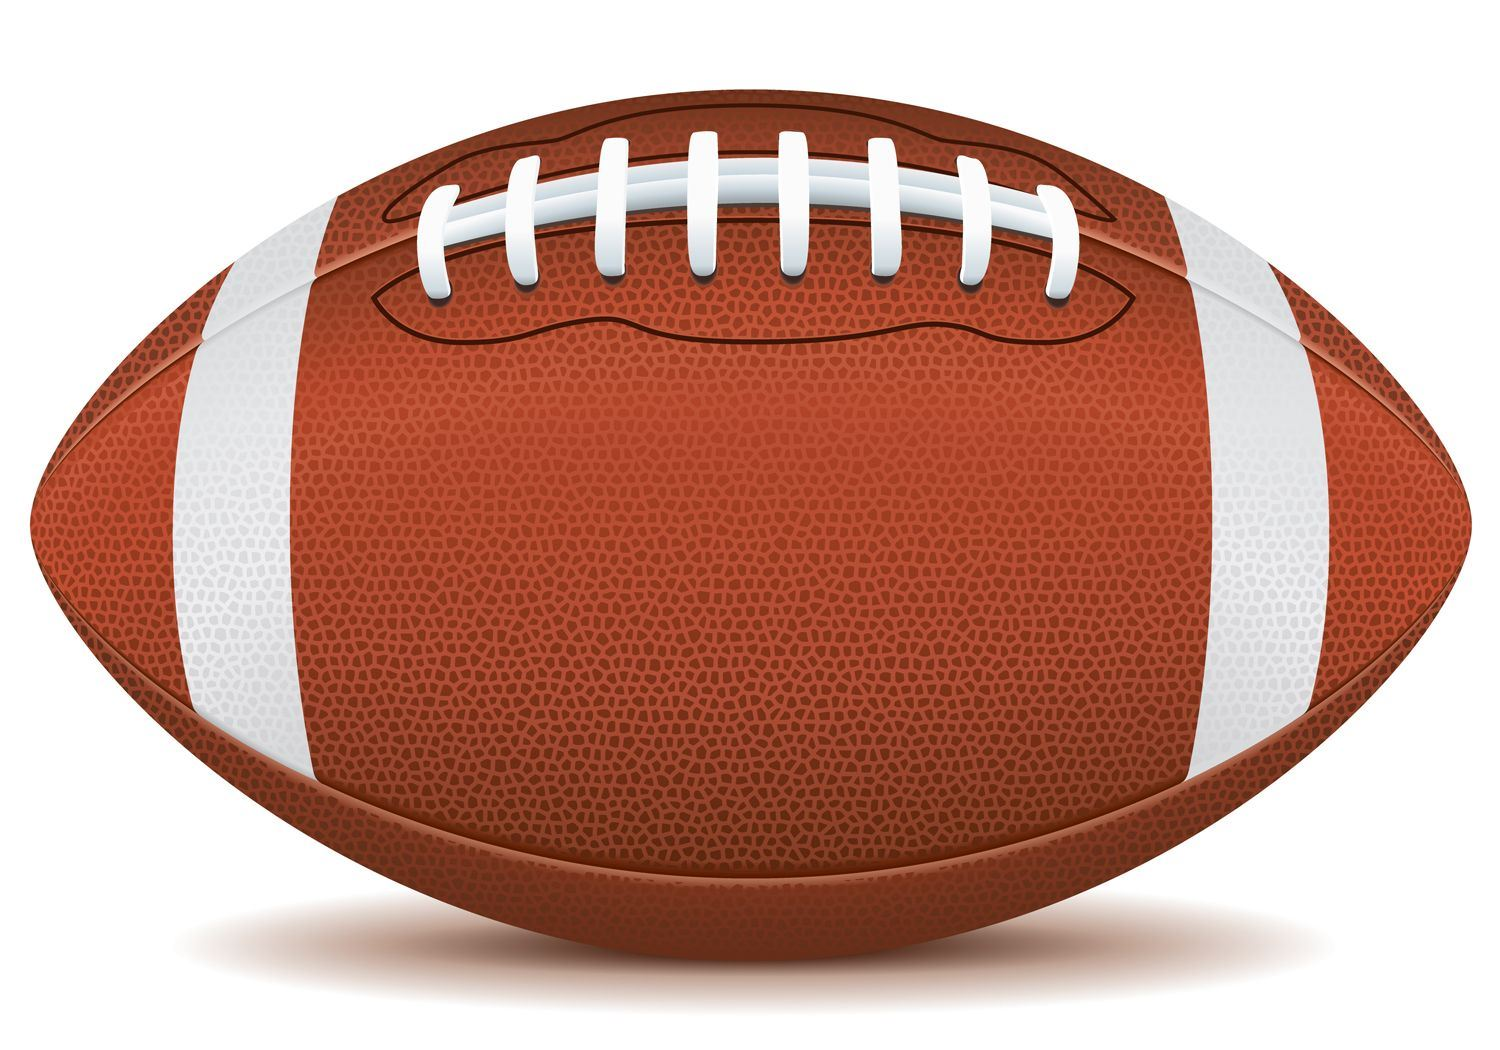 8th grade boys Interested in playing football at DHS click here